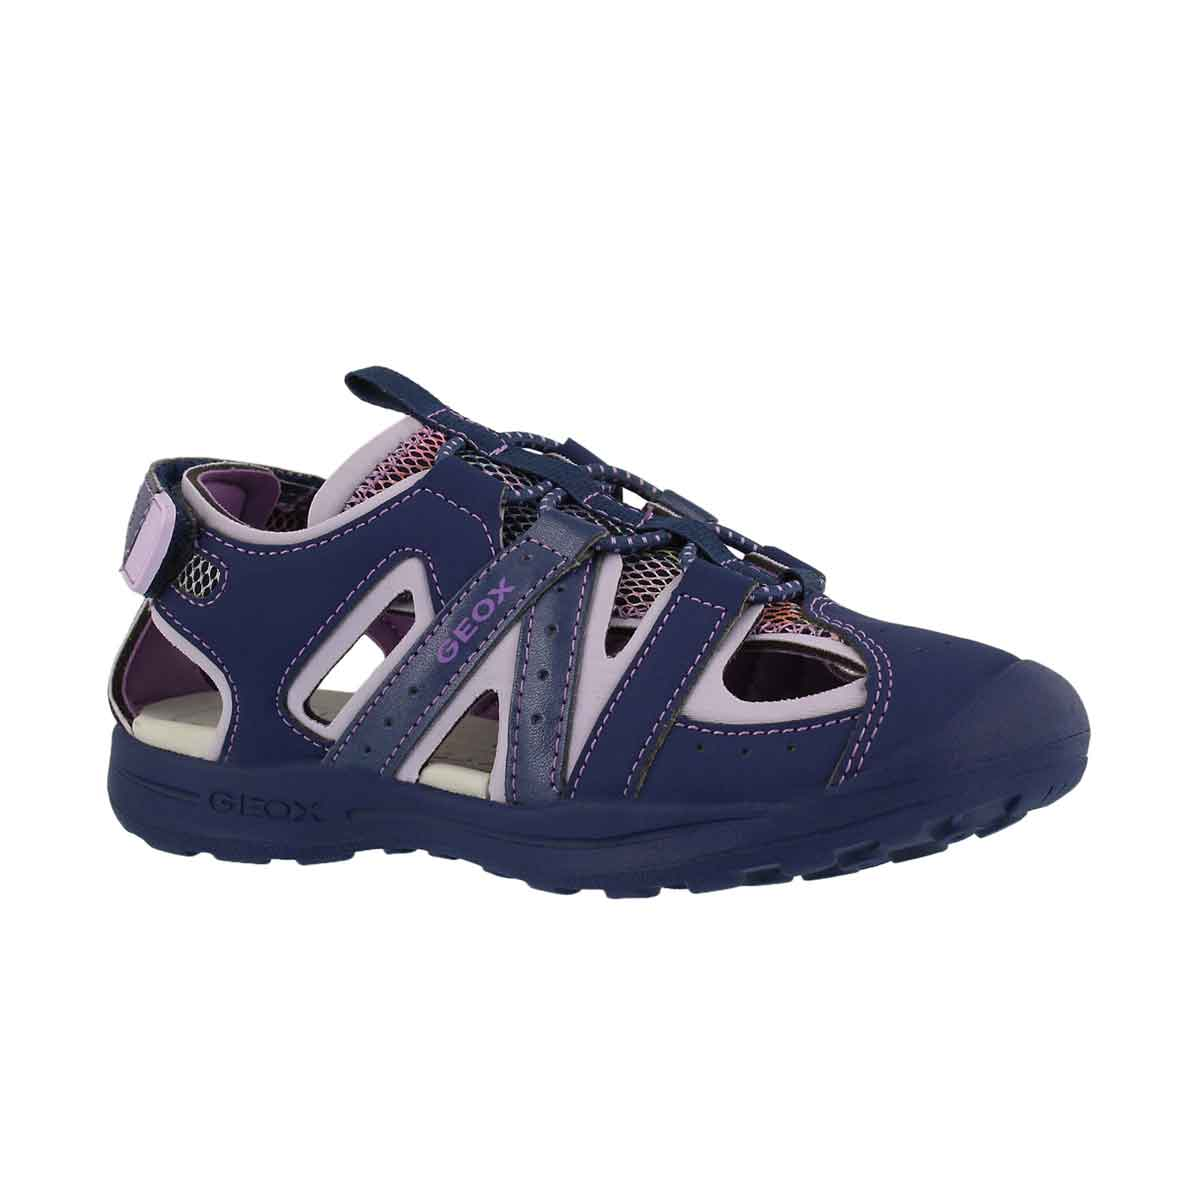 Girls' VANIETT navy/lilac fisherman sandals